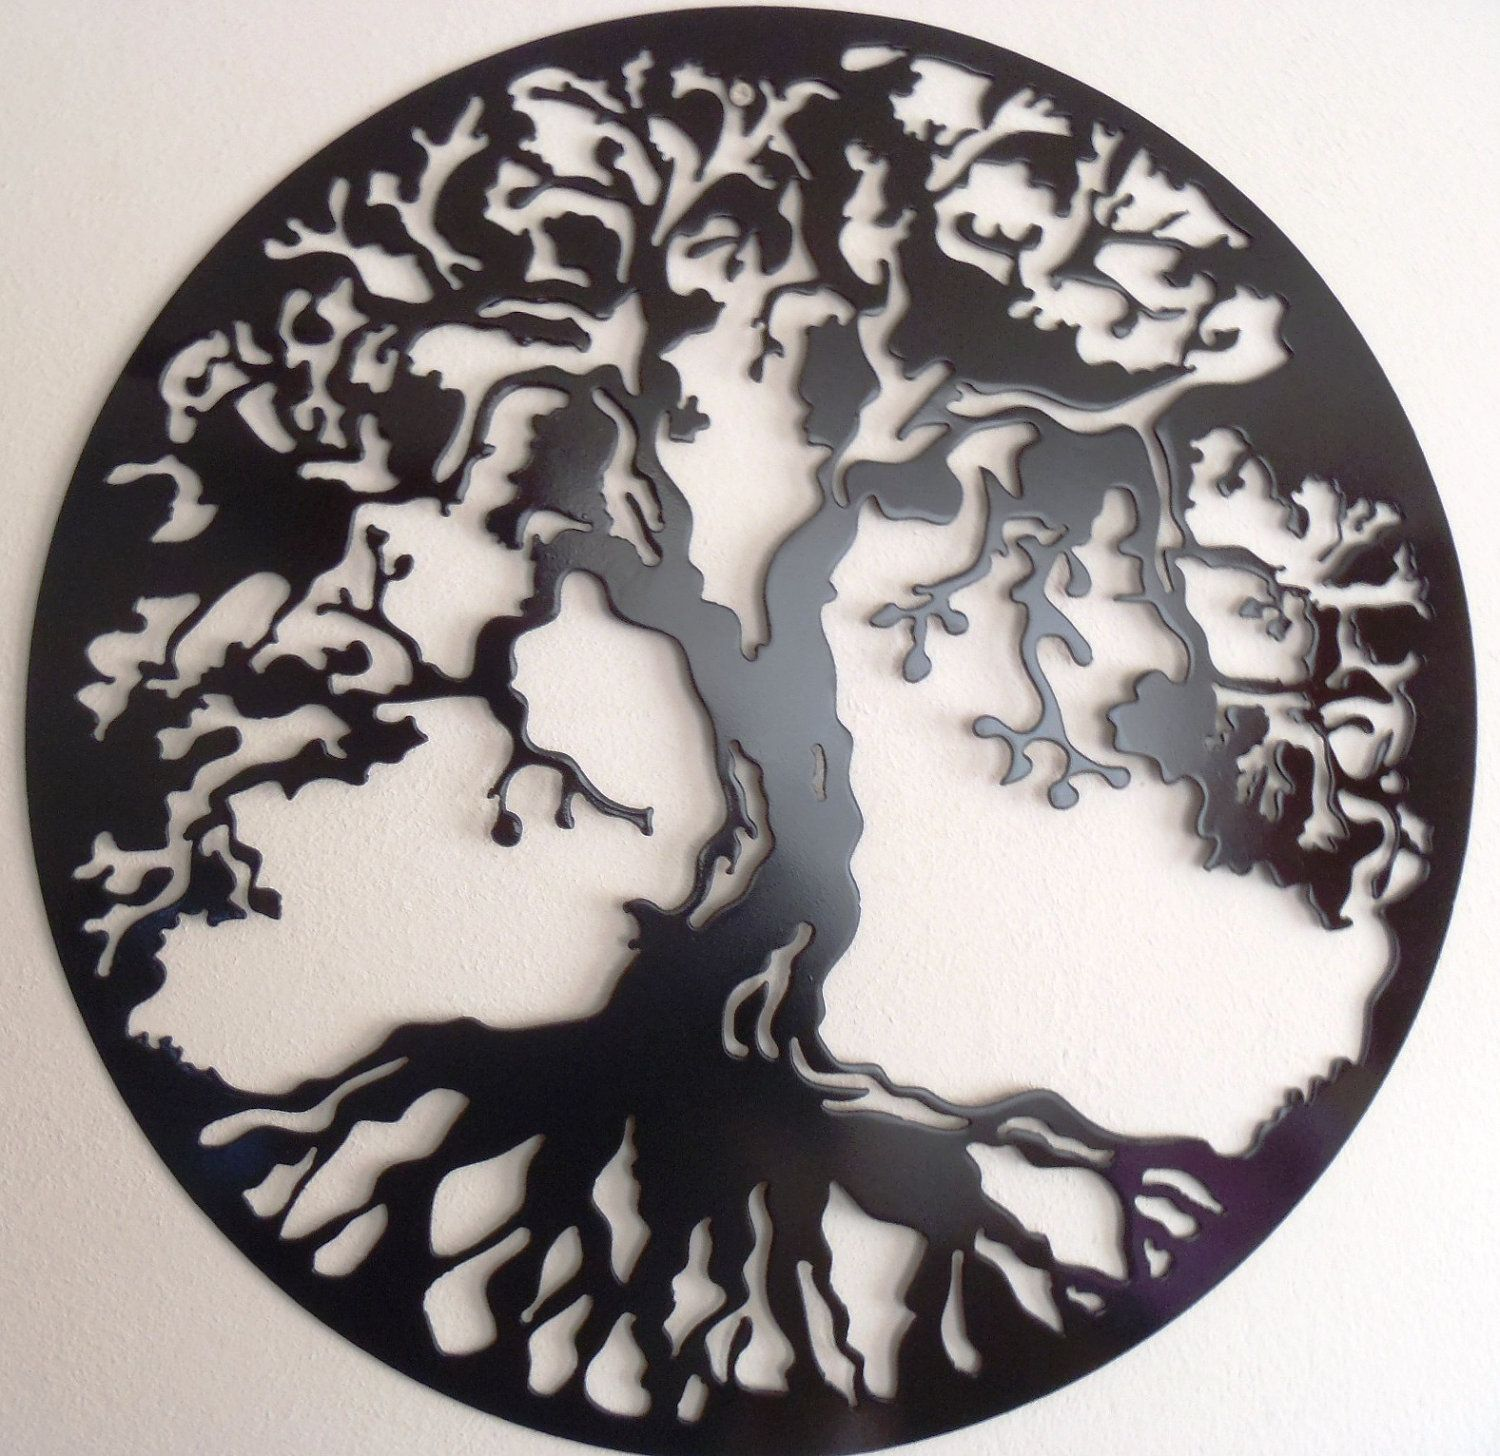 Round Metal Wall Art Decor Tree Of Life Large Wall Decor Metal Art  Black$32.00 Via